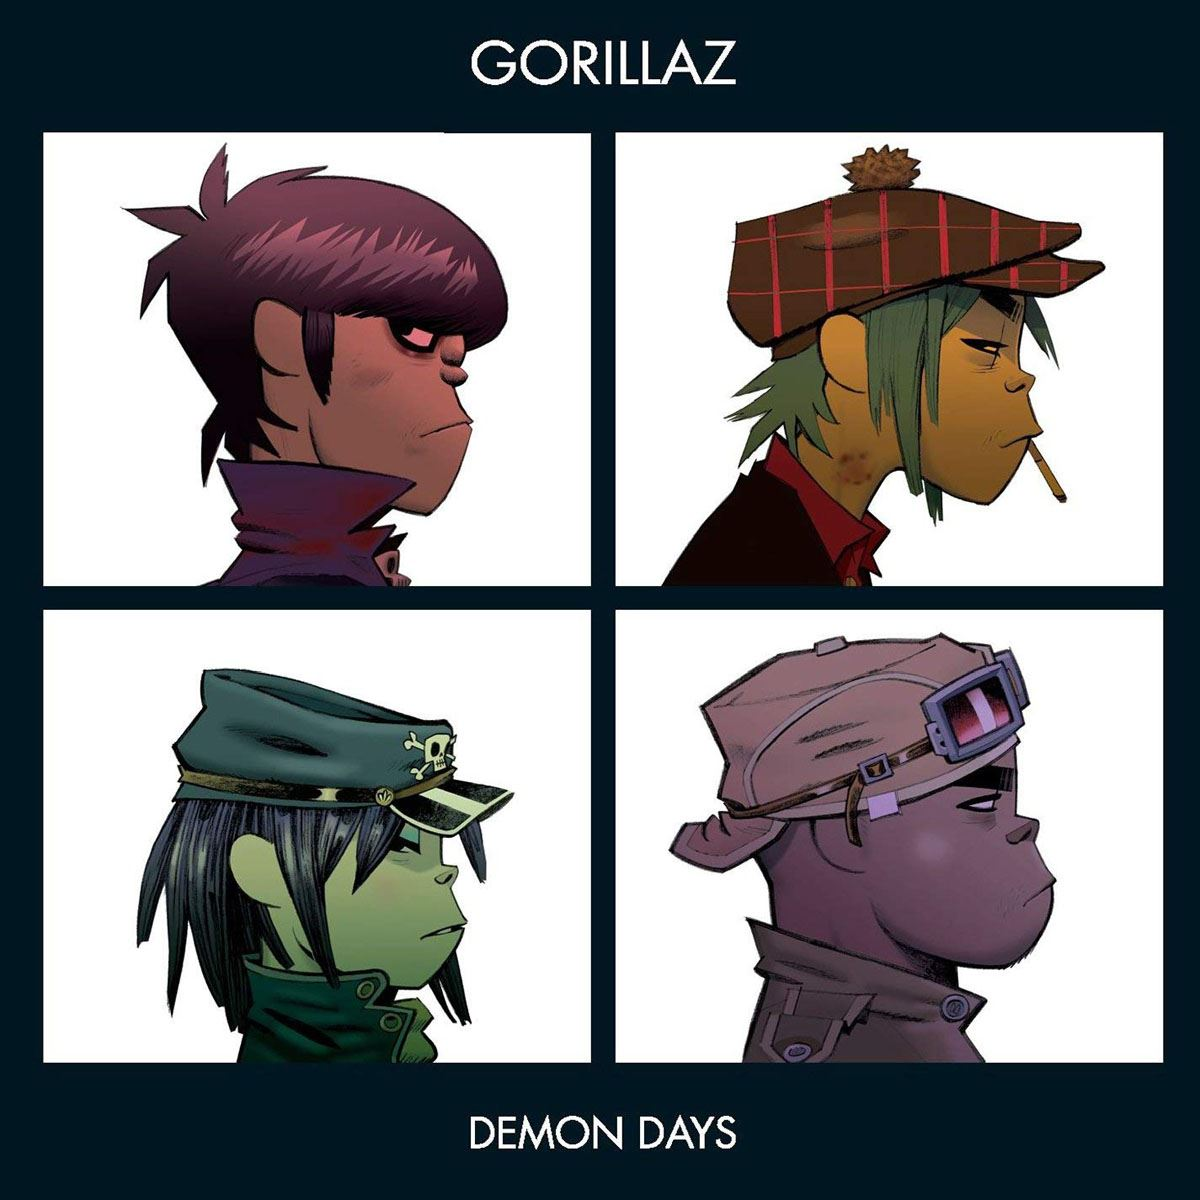 CD Gorillaz-Demon Days